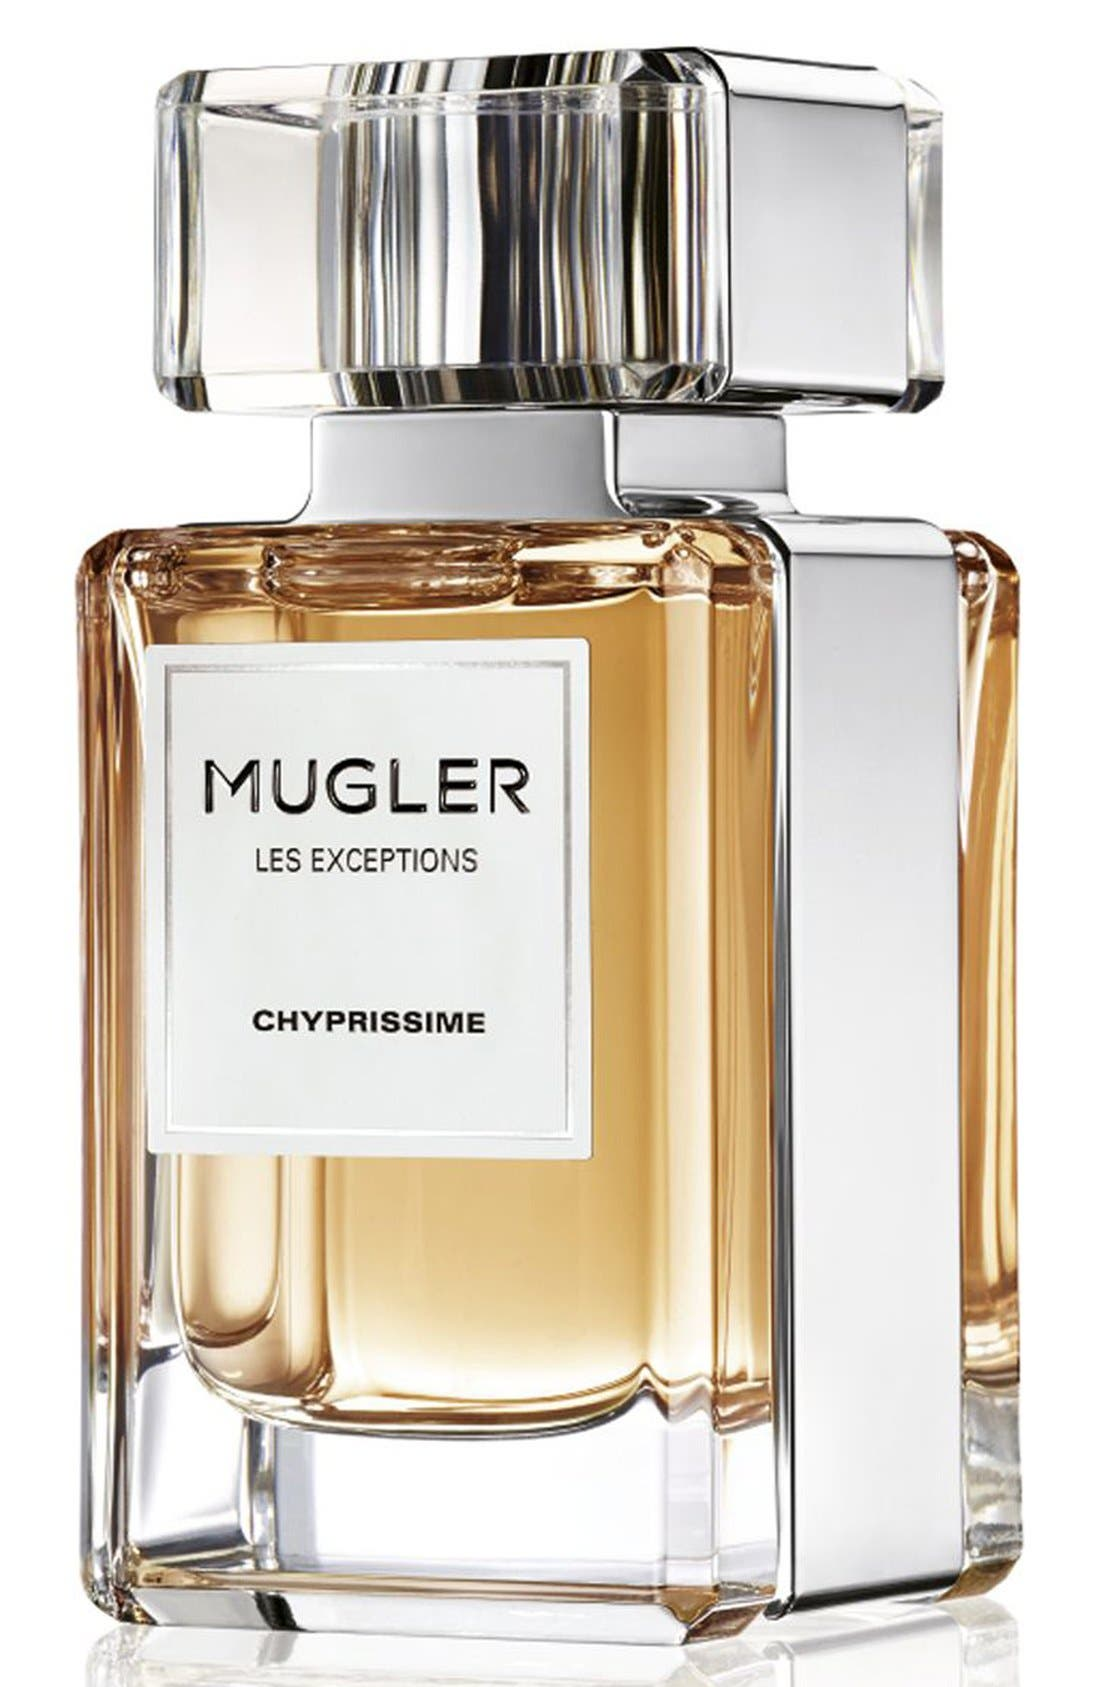 Mugler 'Les Exceptions - Chyprissime' Fragrance